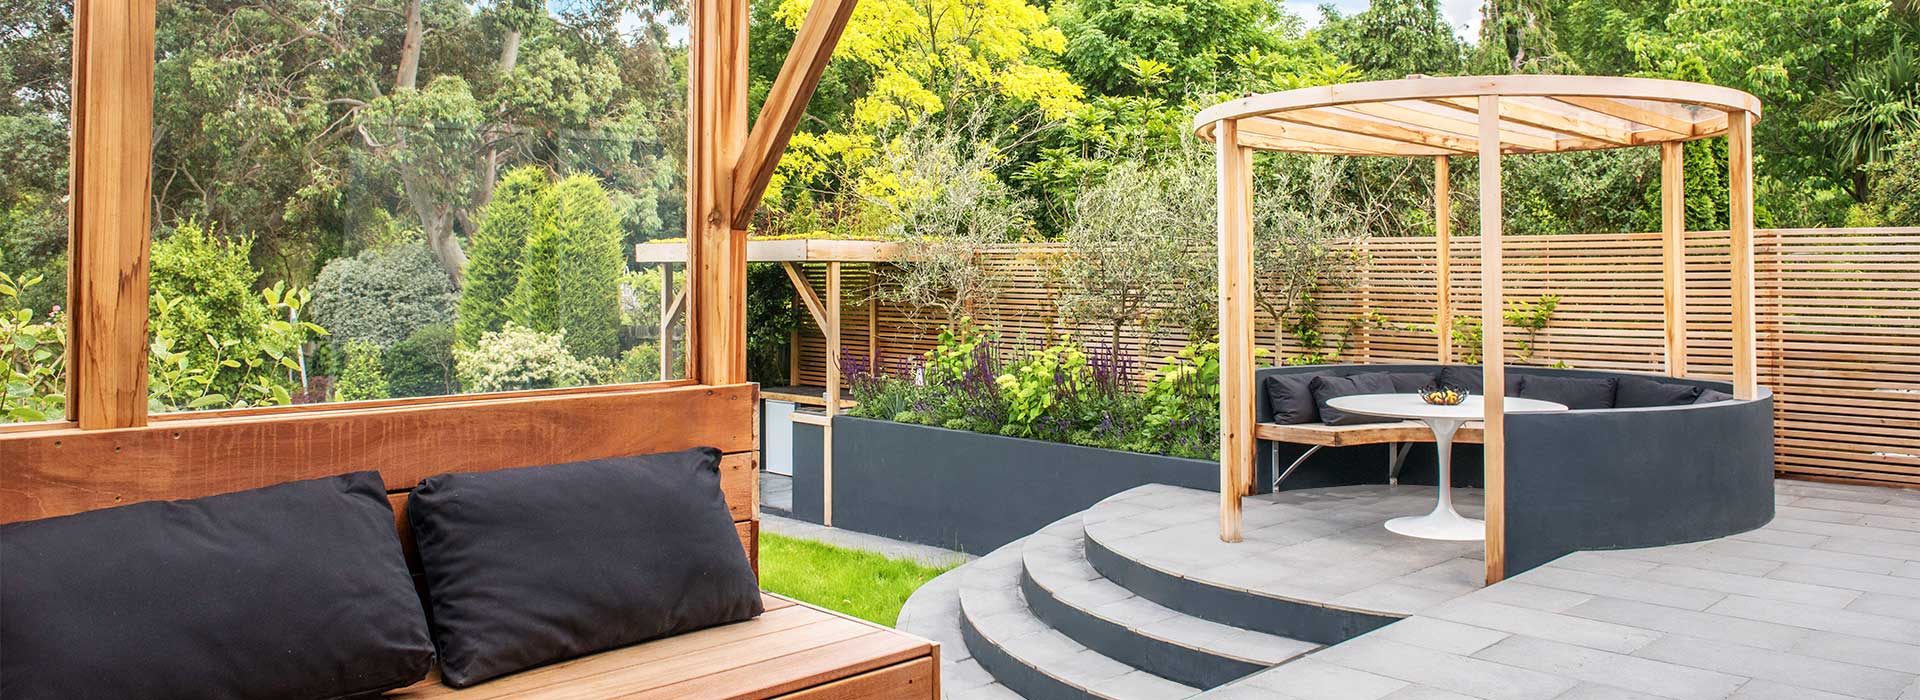 garden design in london 3